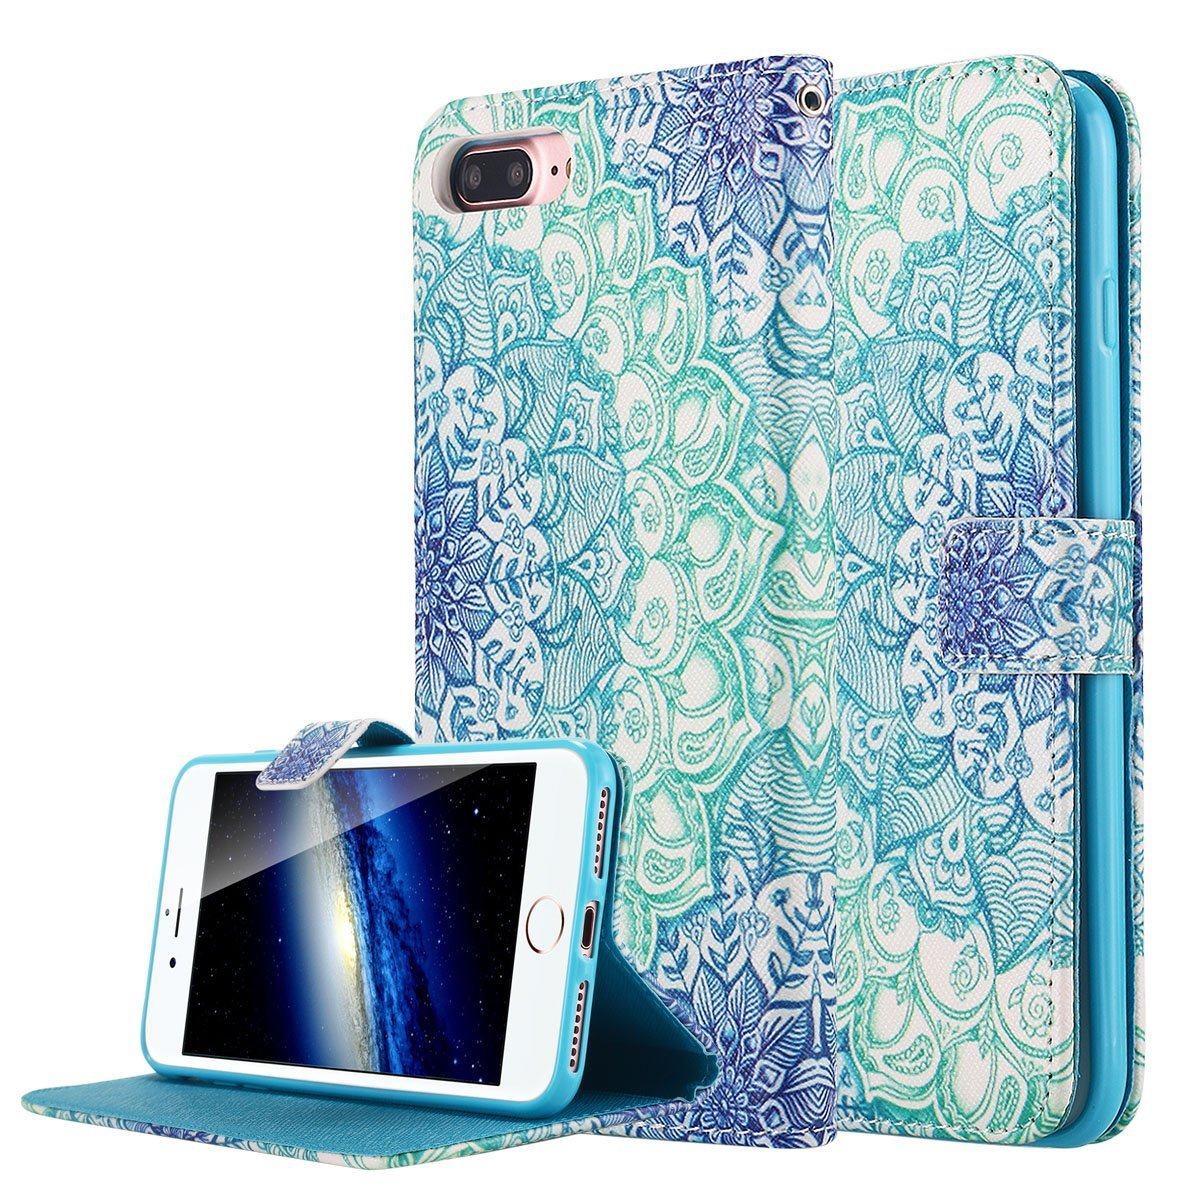 iPhone 7 Plus Case, LONTECT Unique Pattern PU Leather Stand Flip Wallet Case Cover with Card Slot Holder for Apple iPhone 7 Plus - Flower